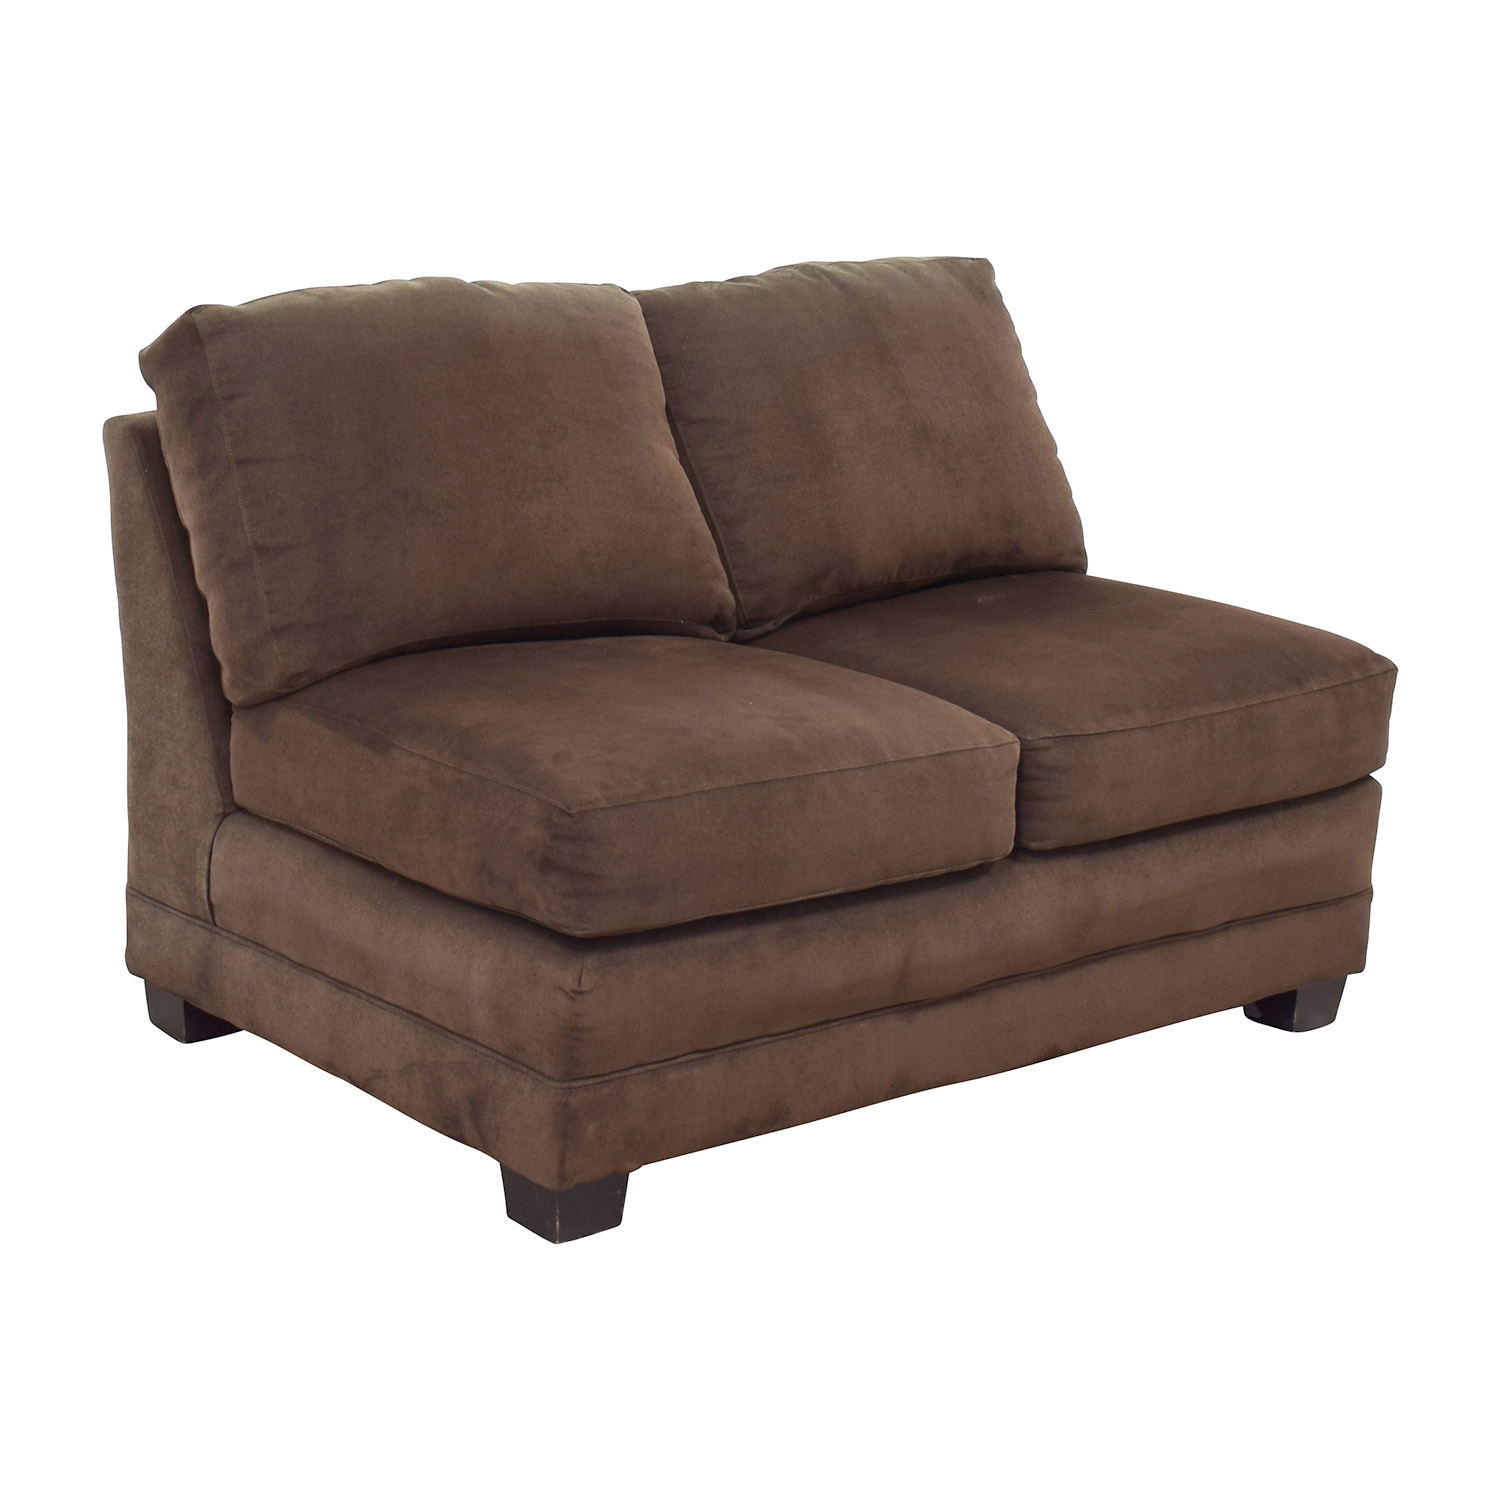 buy Crate and Barrel Crate and Barrel Brown Armless Loveseat online